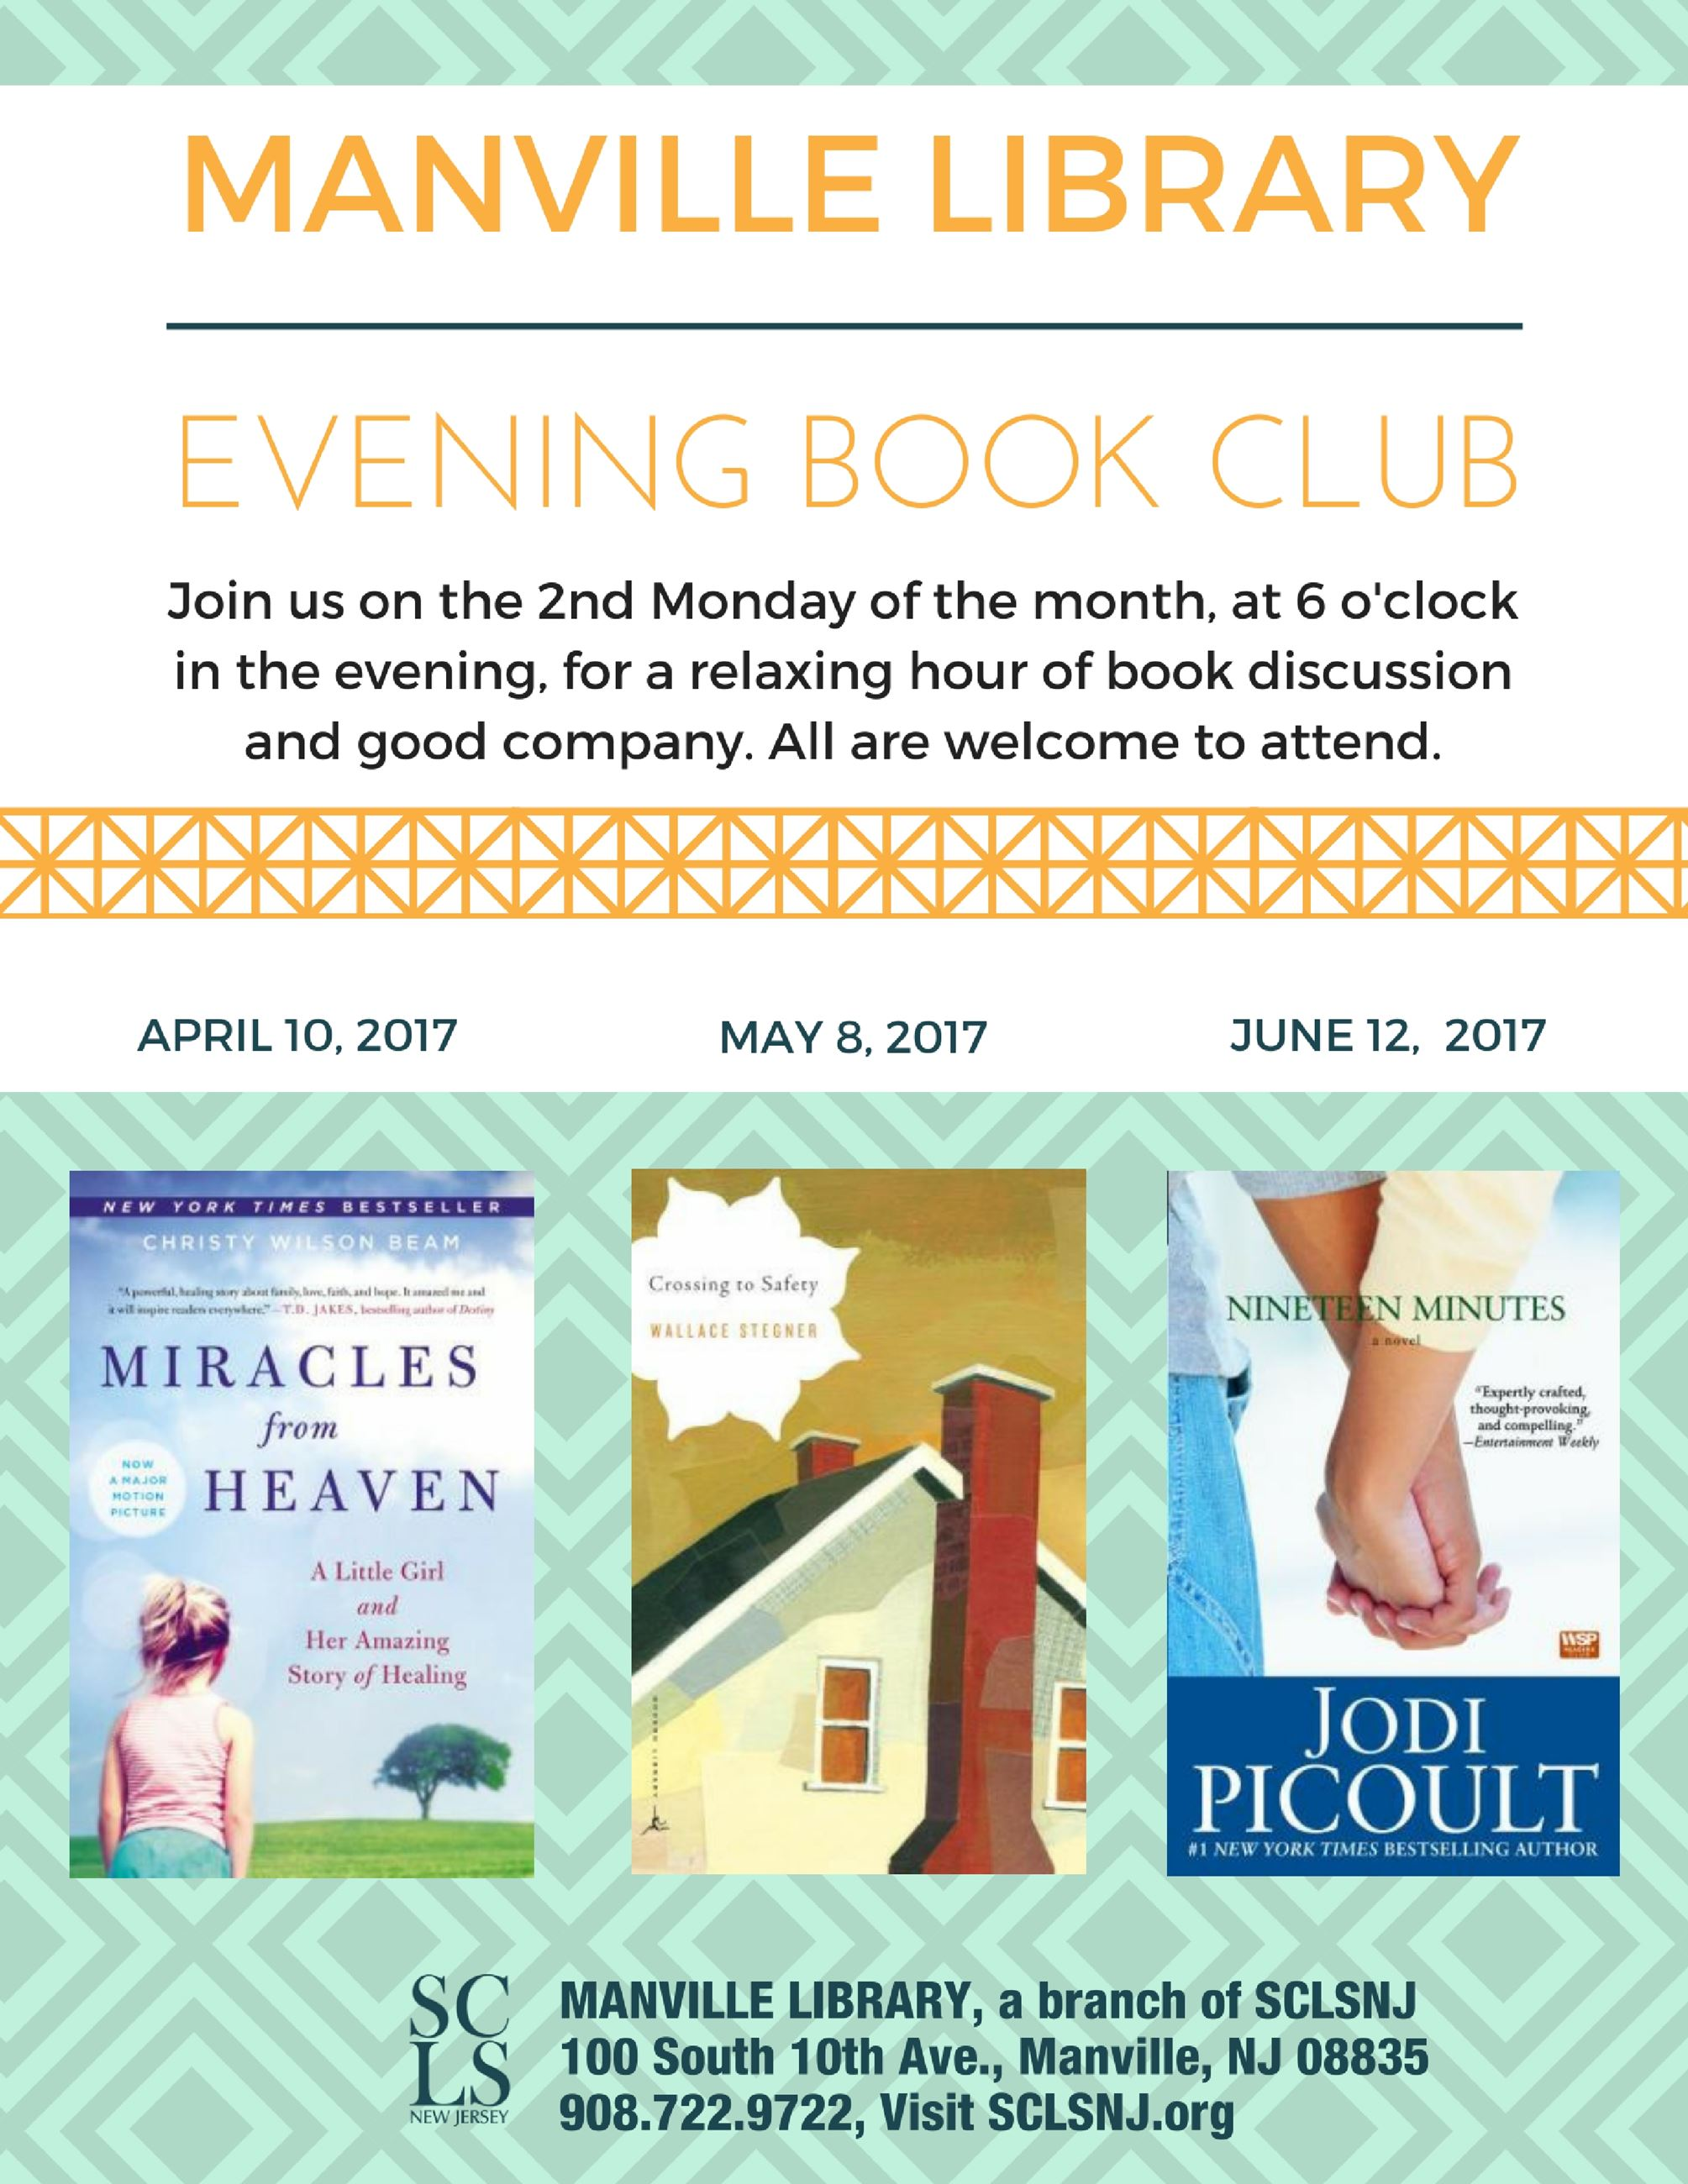 Evening Book Club Flyer Apr-May 2017